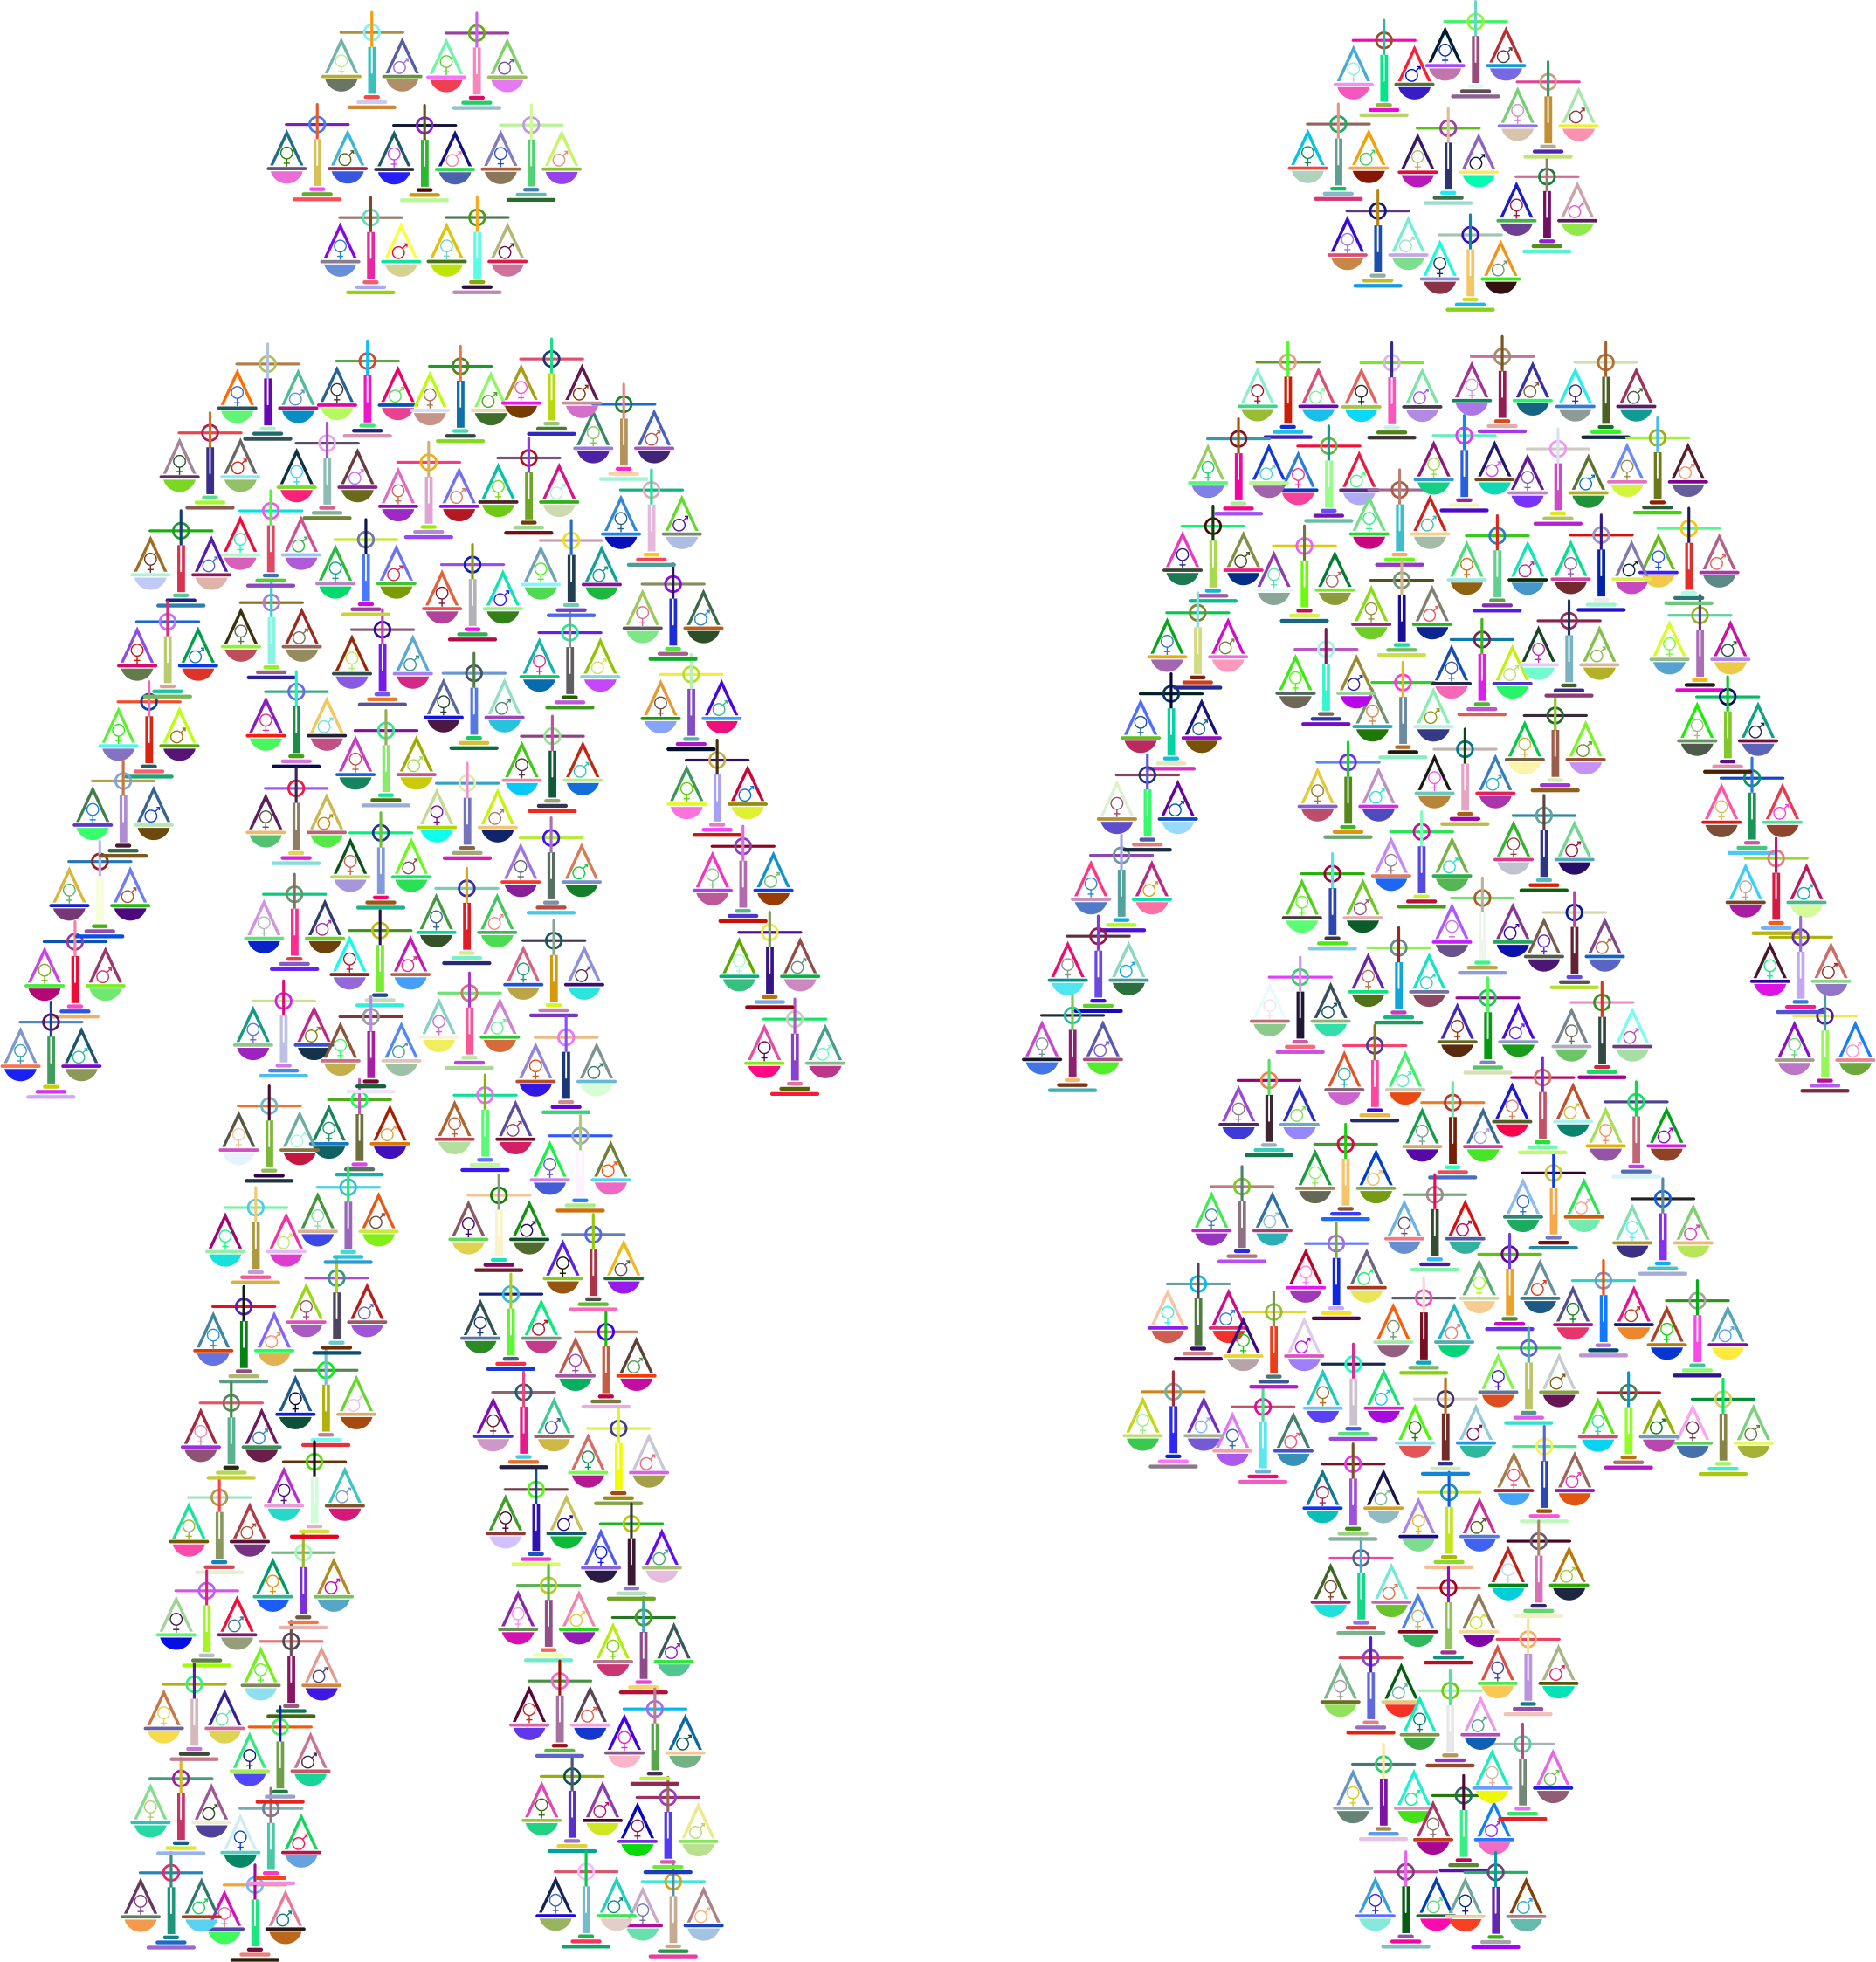 Prismatic Gender Equality Male And Female Figures 2 No Background by GDJ